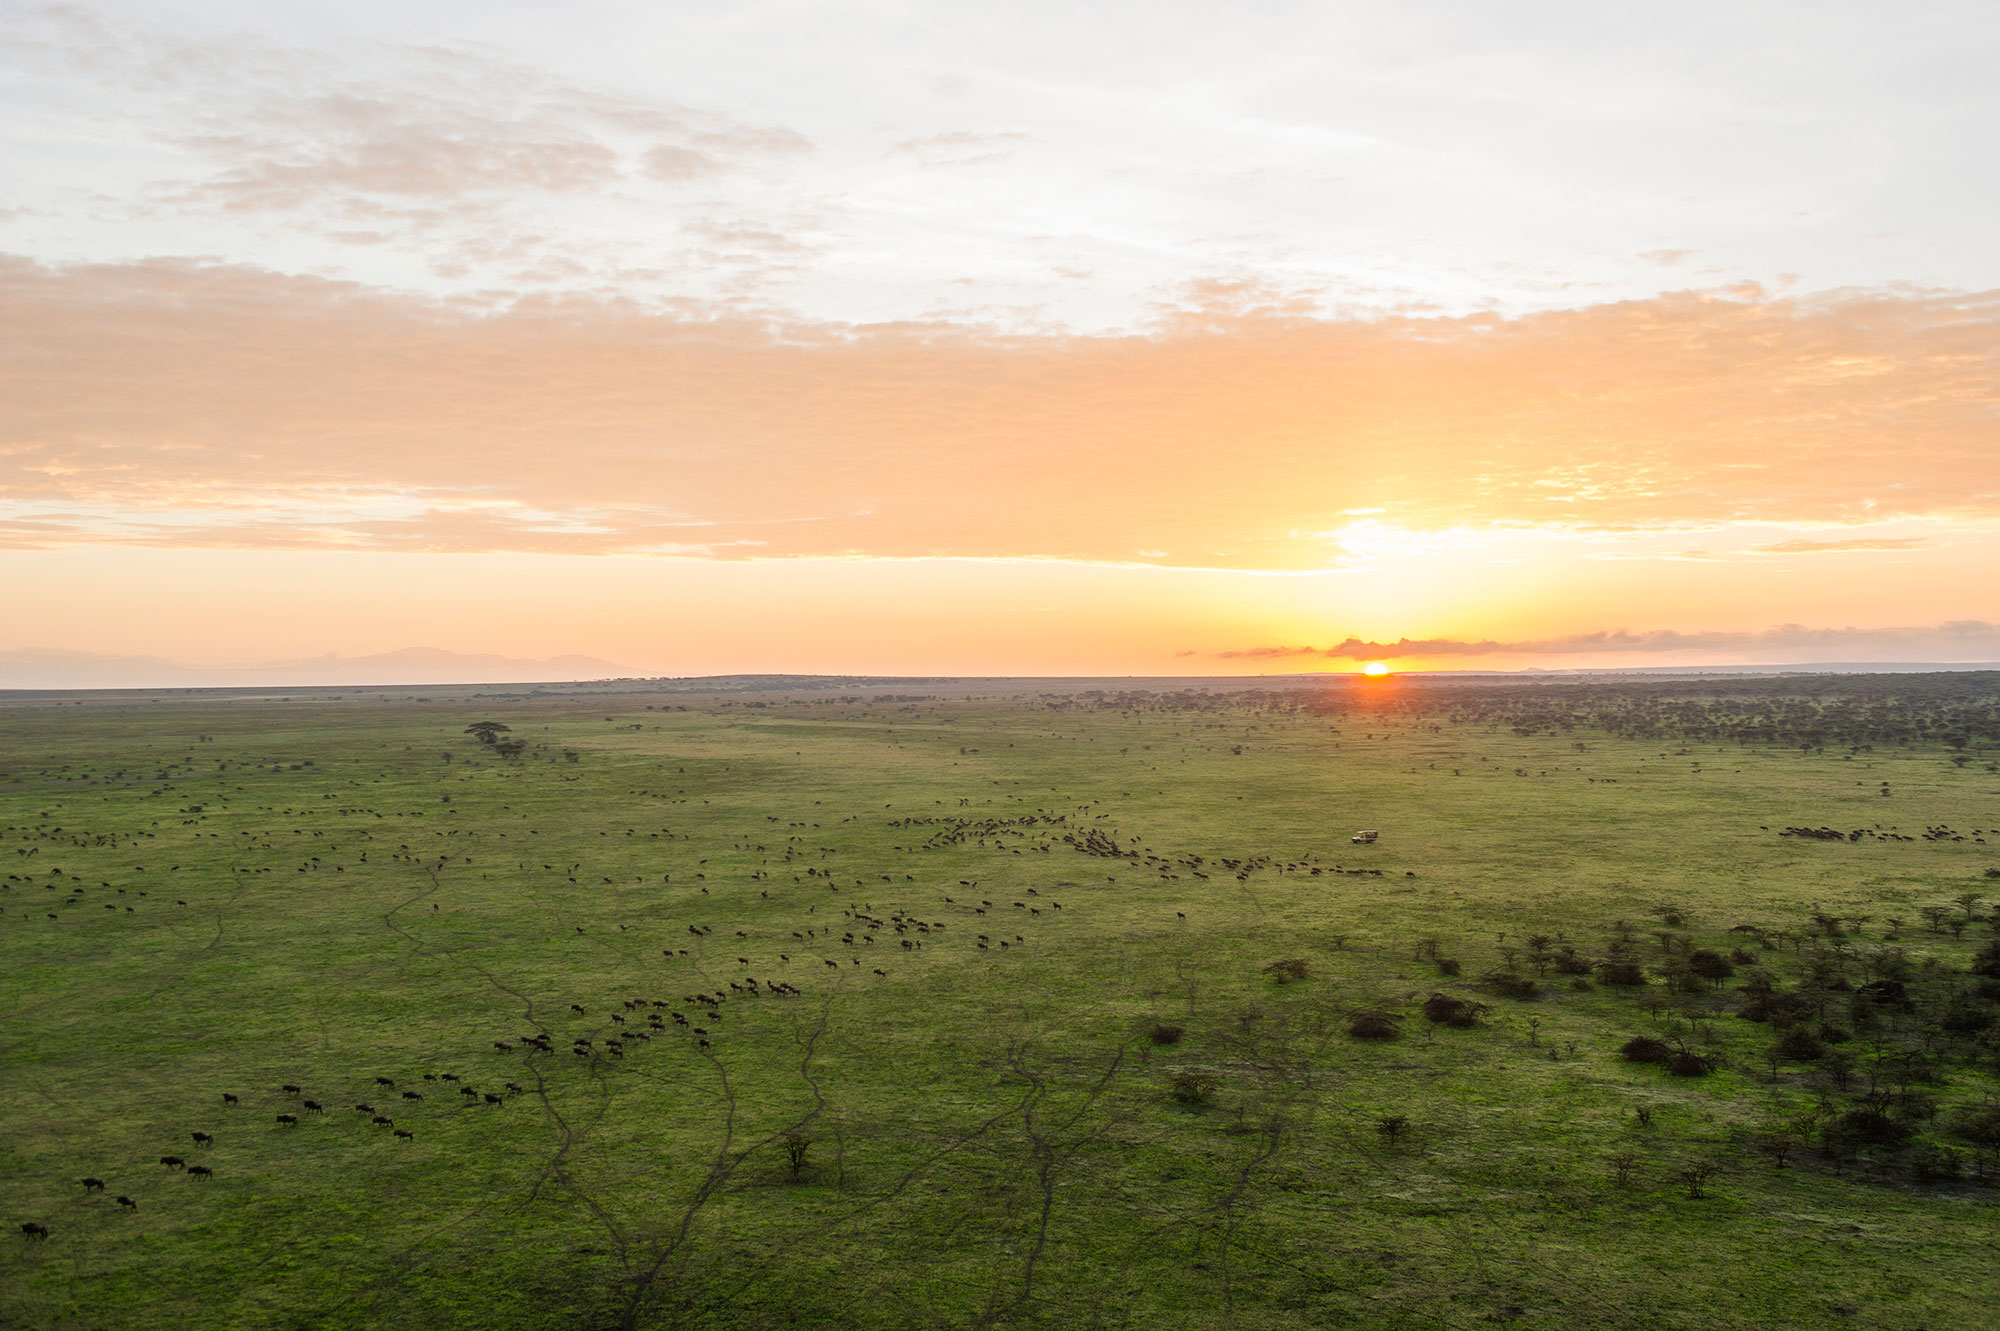 Serengeti Sunset in Africa